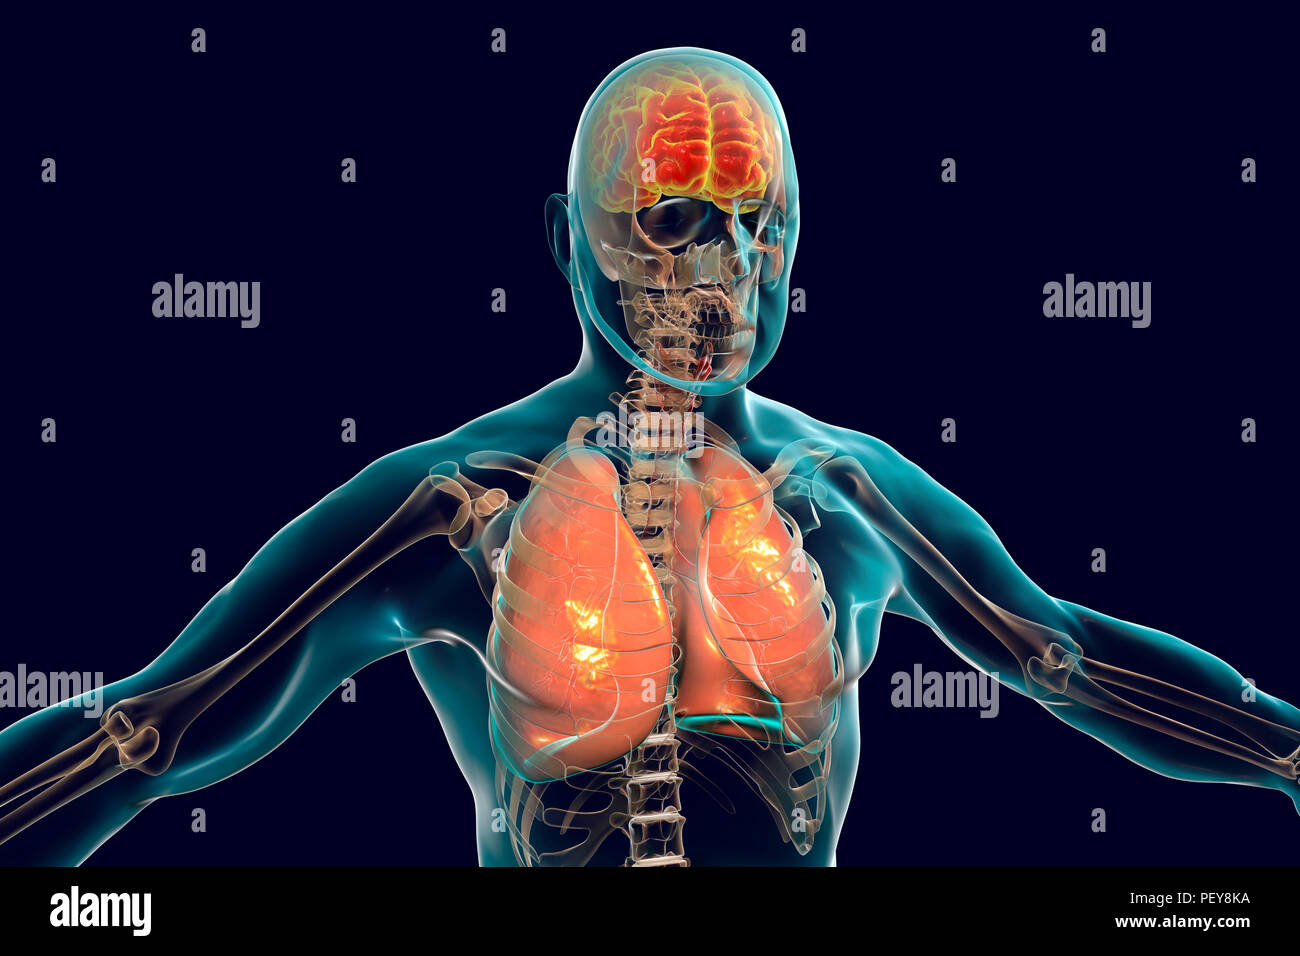 Brain and lungs inside human body, computer illustration. - Stock Image